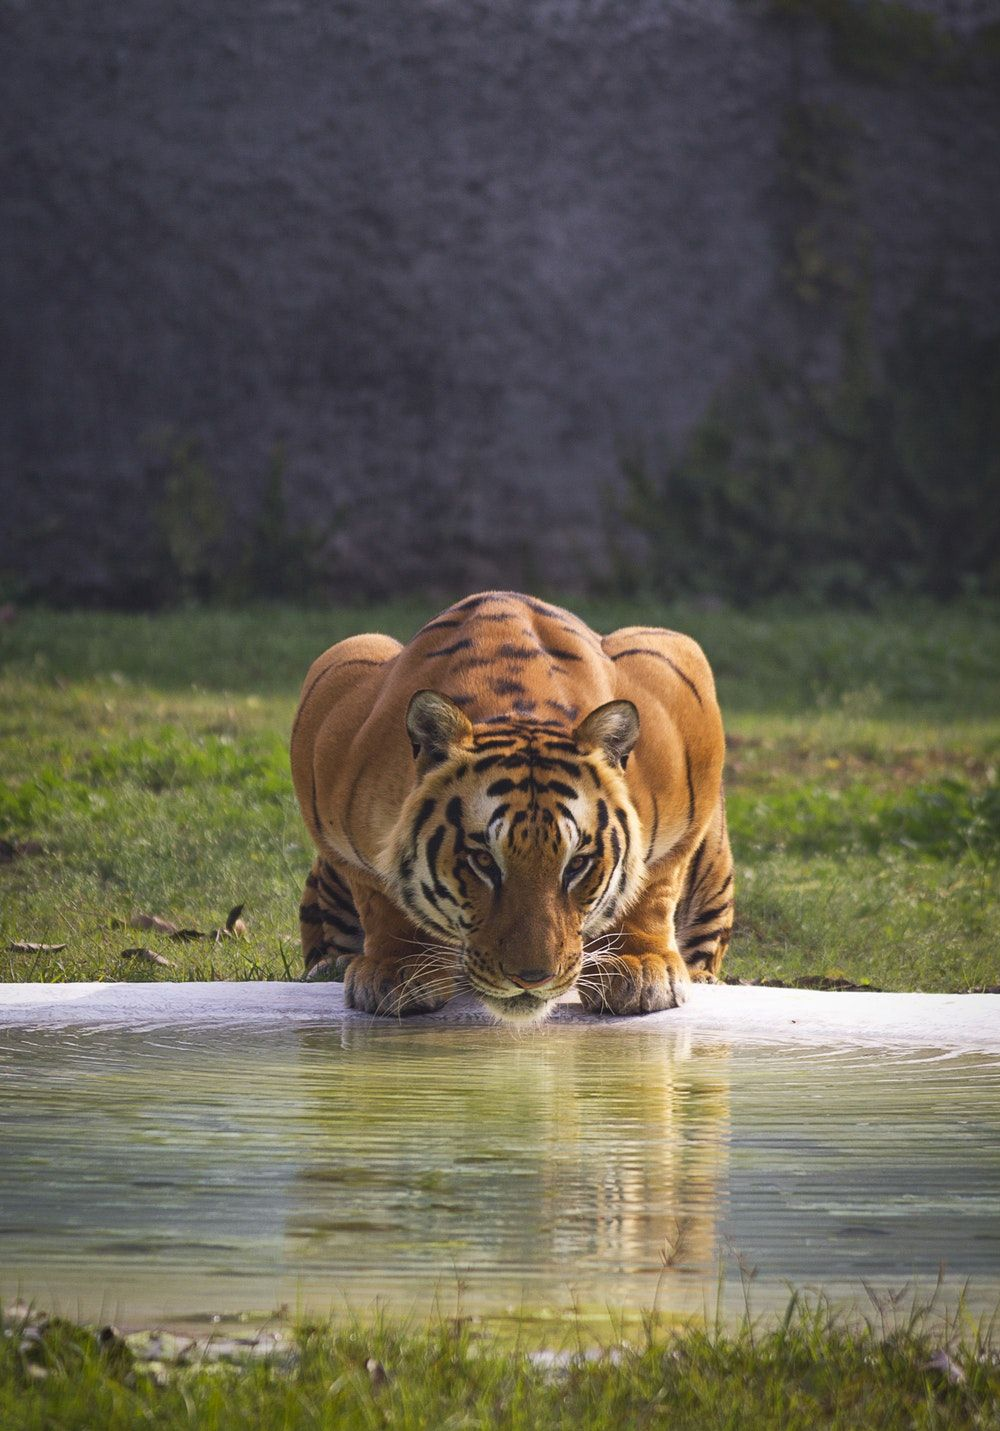 1000x1431 Tiger Pictures | Download Free Images & Stock Photos on Unsplash